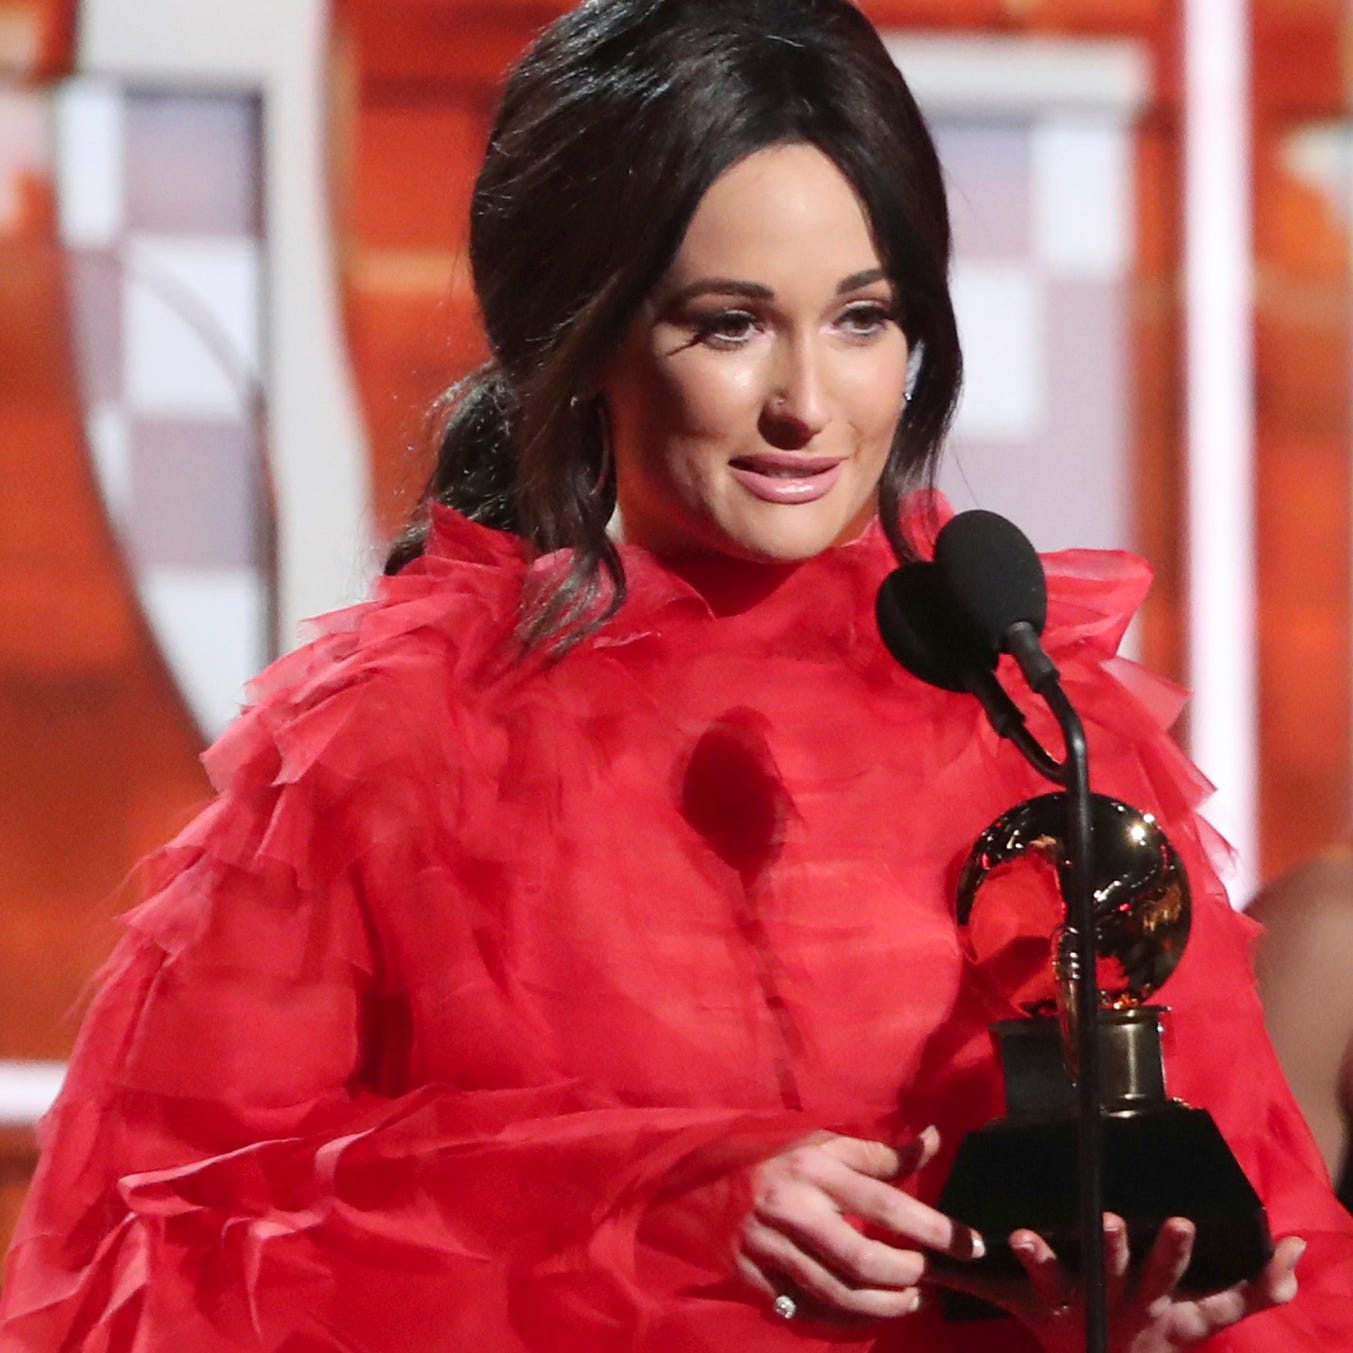 Kacey Musgraves asks fans for best Grammy memes of her surprised reaction to winning AOTY